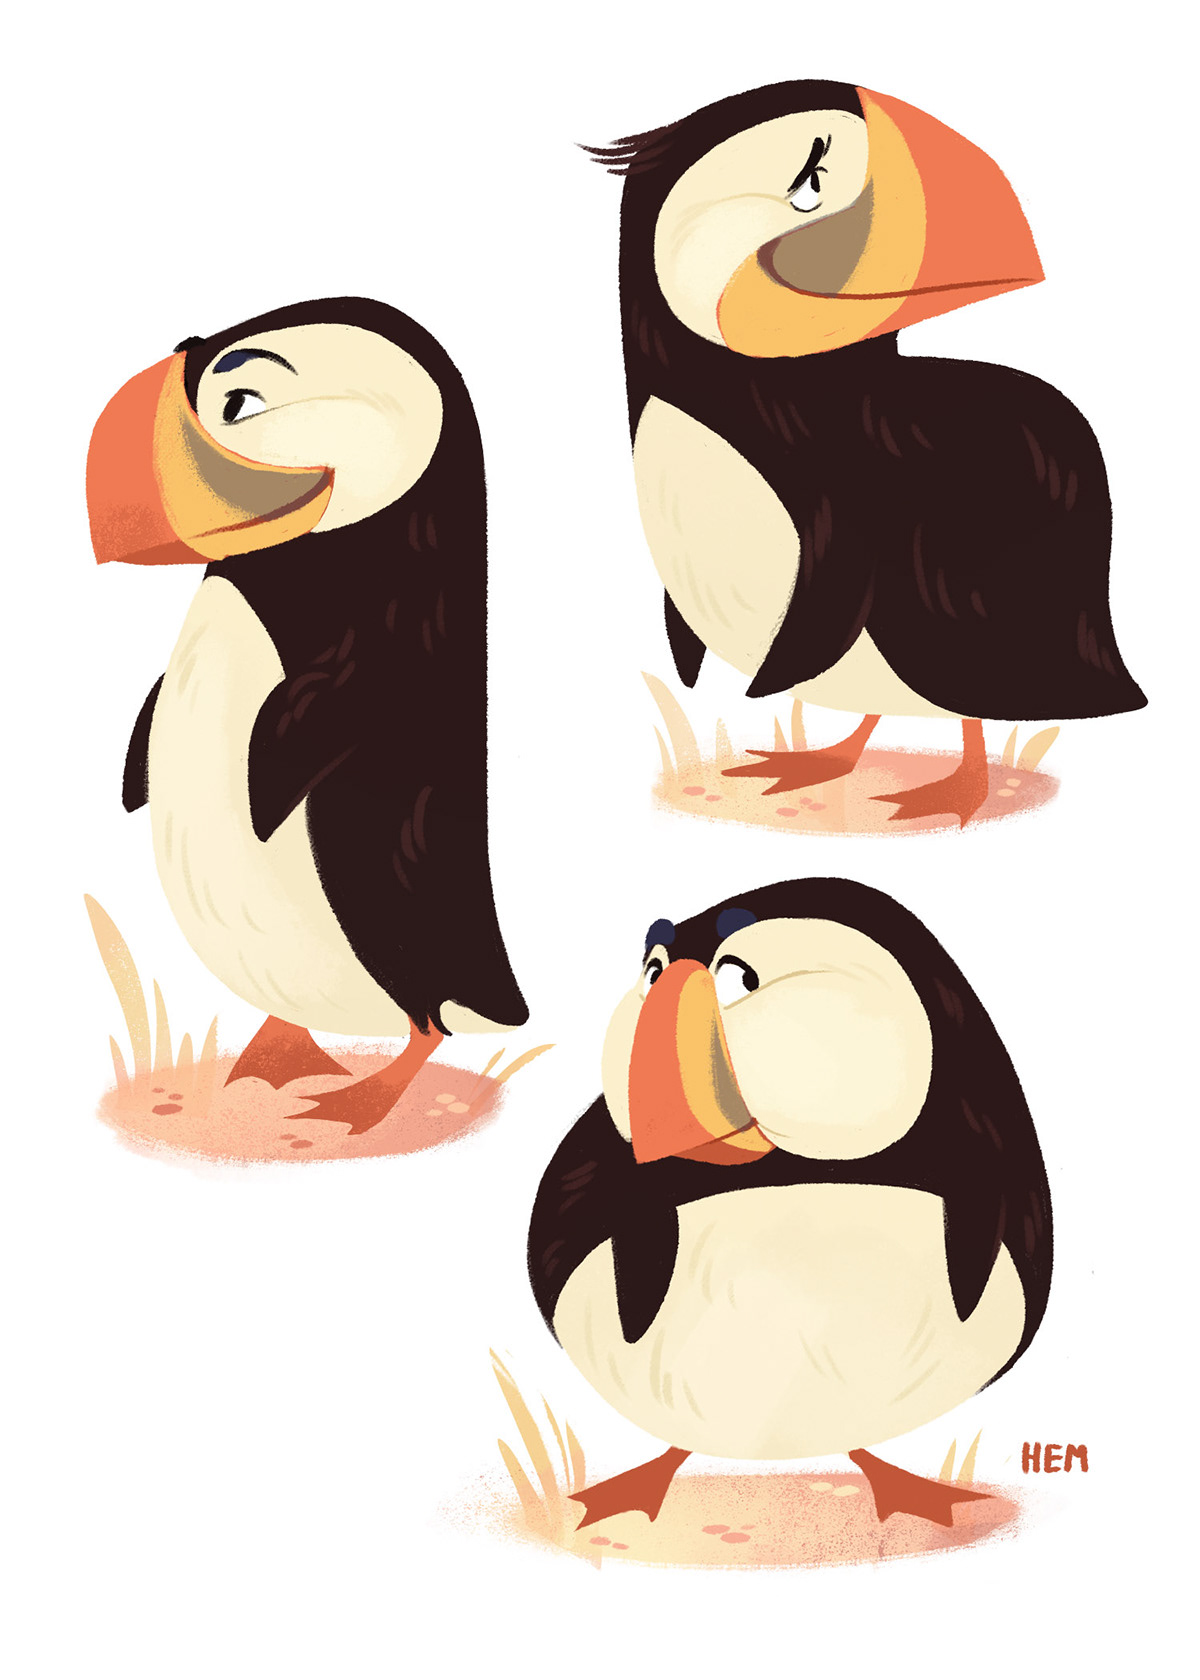 Dancing puffin clipart picture royalty free Puffins! on Behance picture royalty free